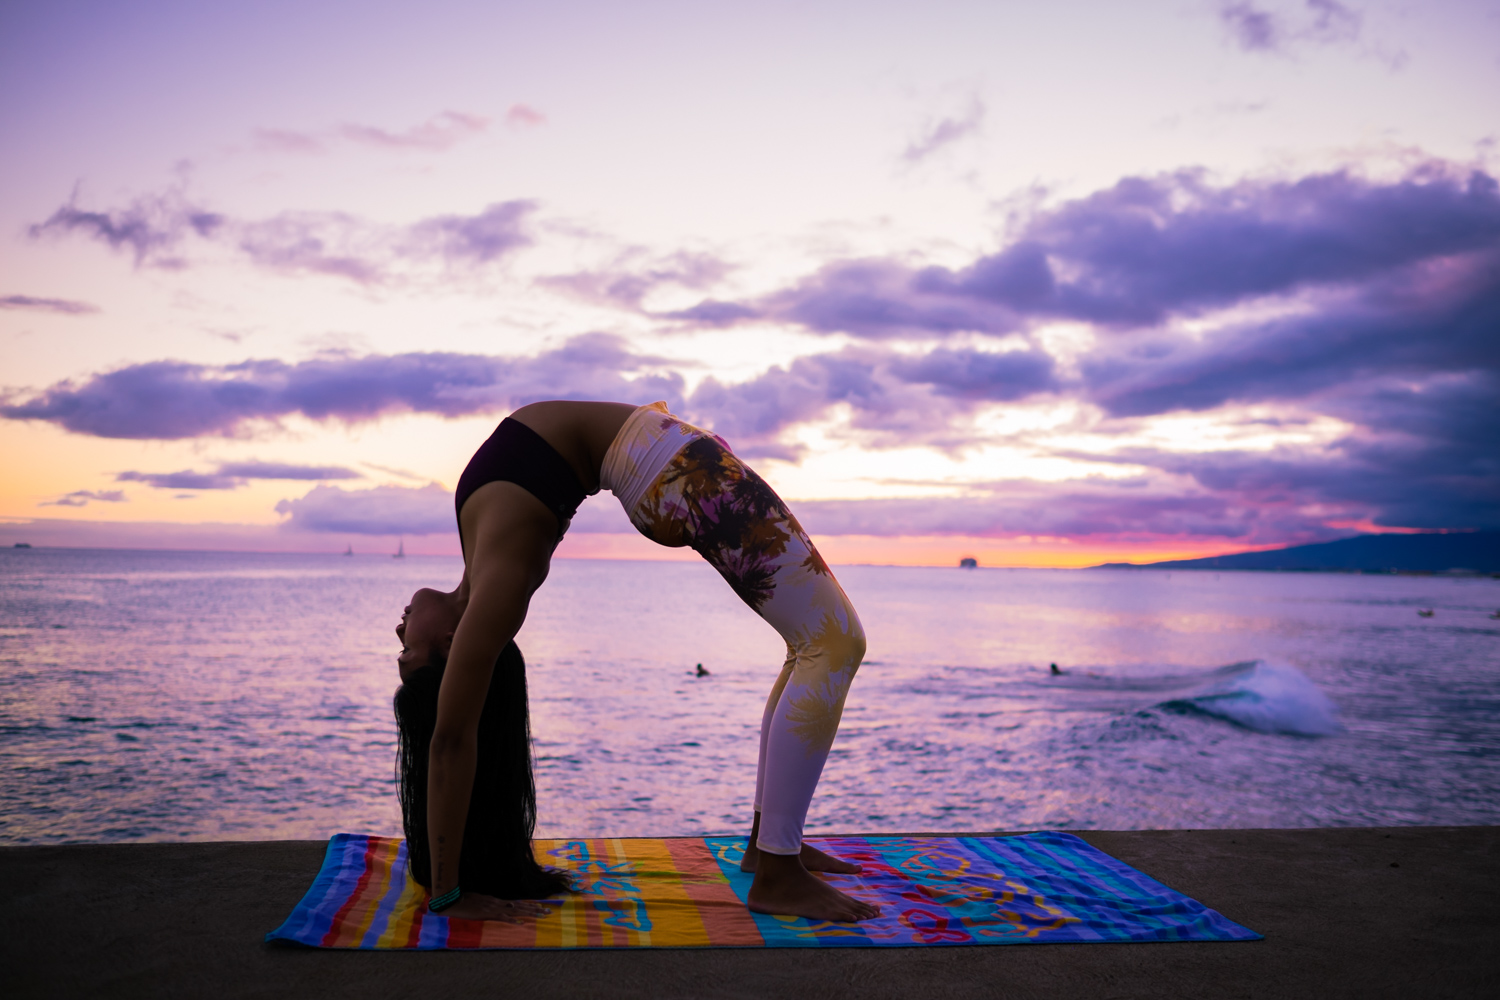 Yoga_Travel_Photographer_041.JPG